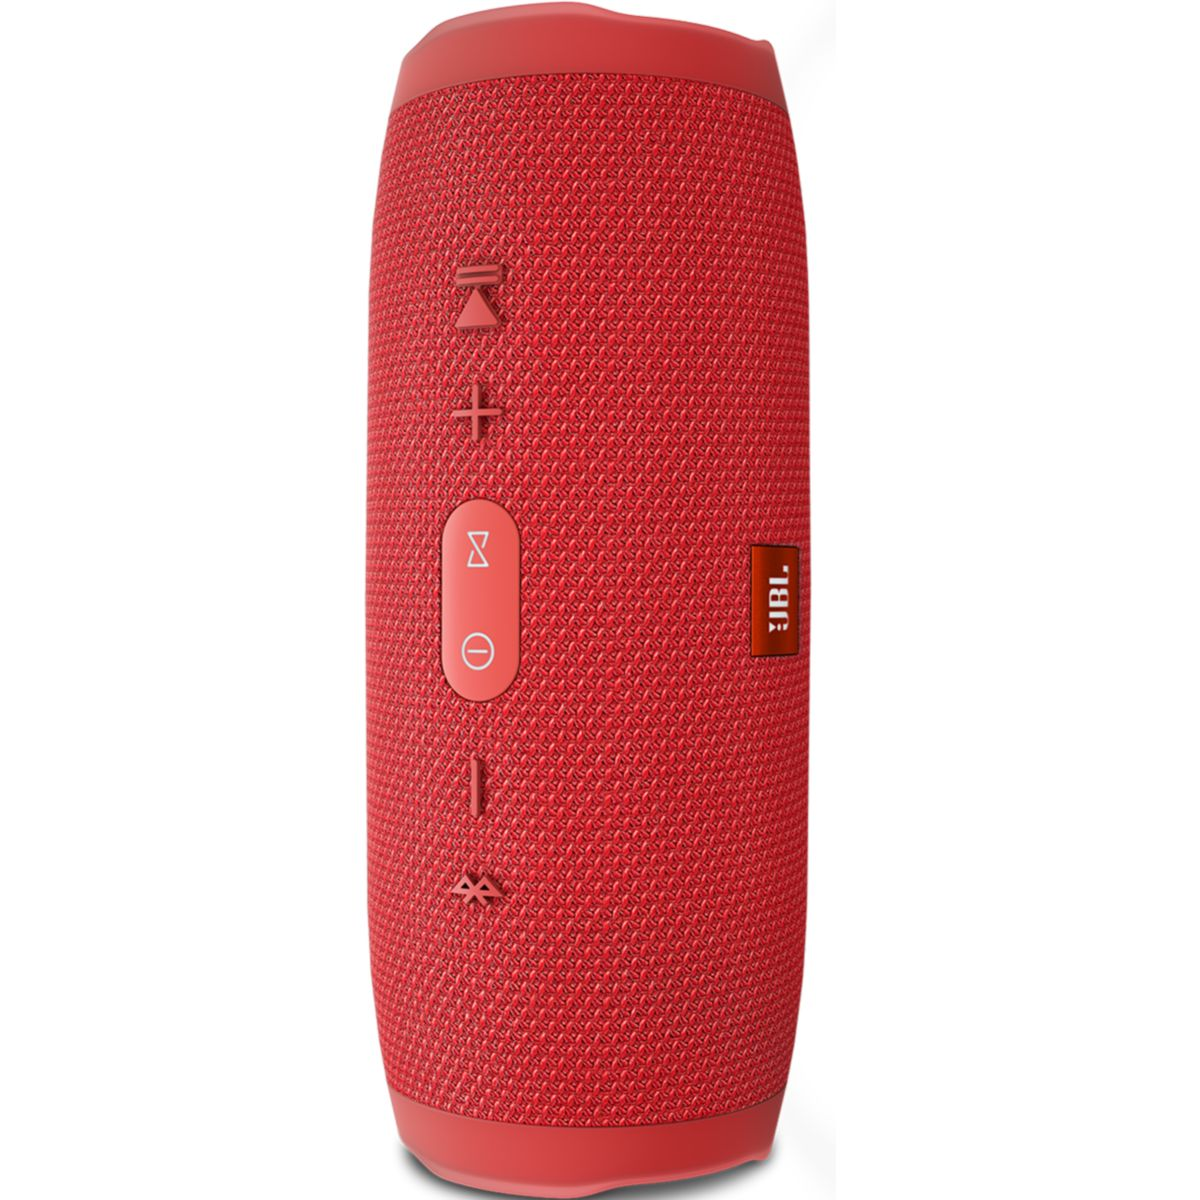 Enceinte Bluetooth JBL Charge 3 rouge (photo)